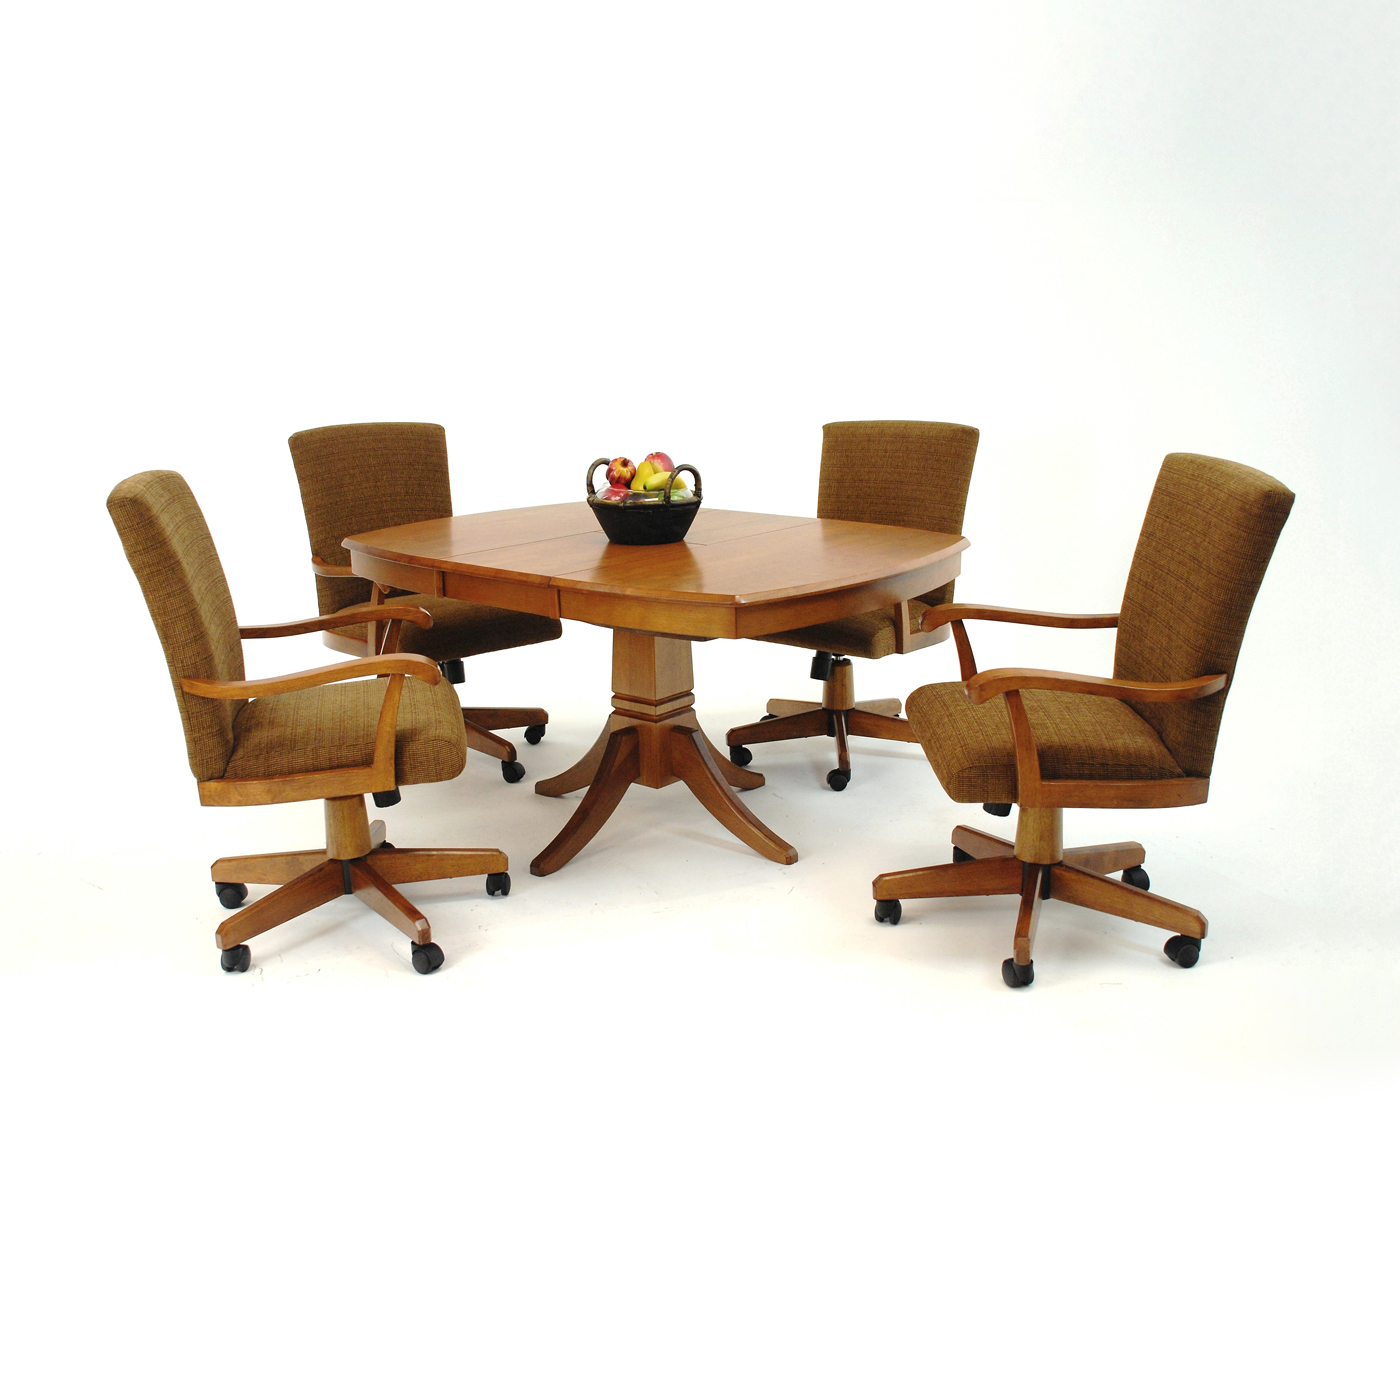 Image of: Small Dining Room Chairs With Casters